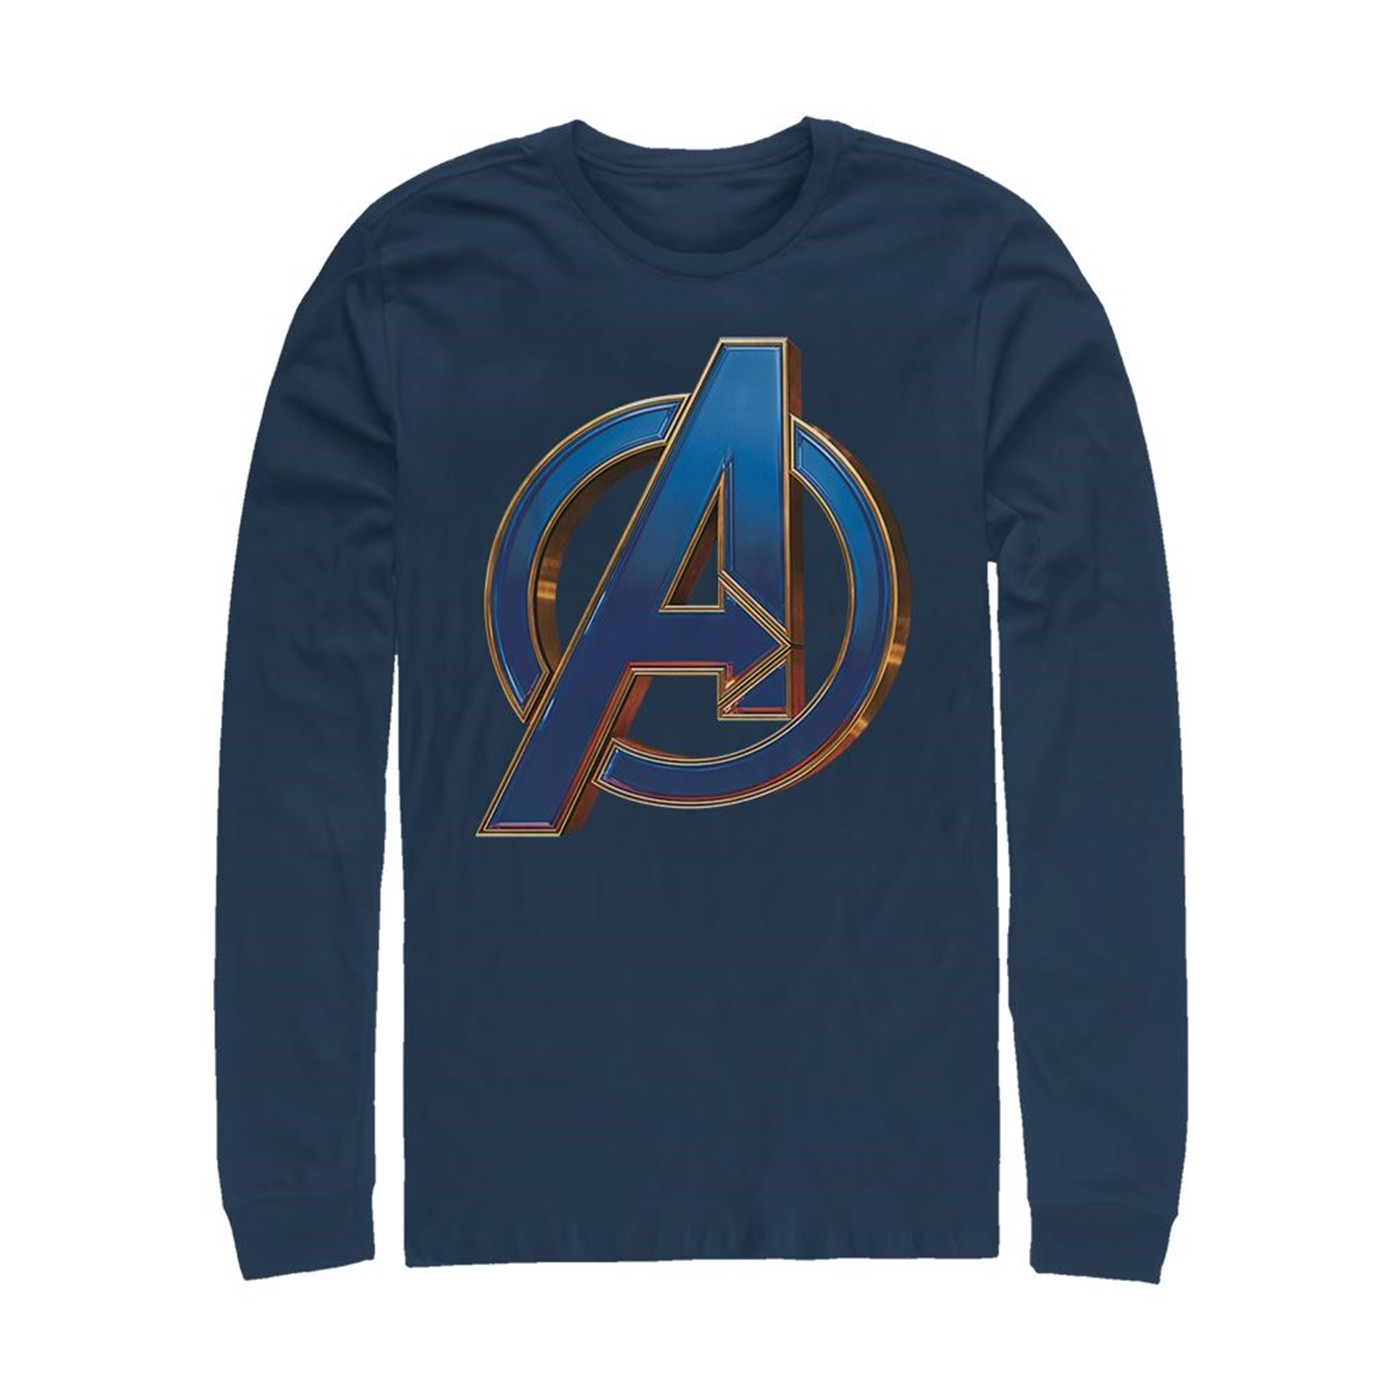 Avengers Endgame Logo Blue Long Sleeve Shirt